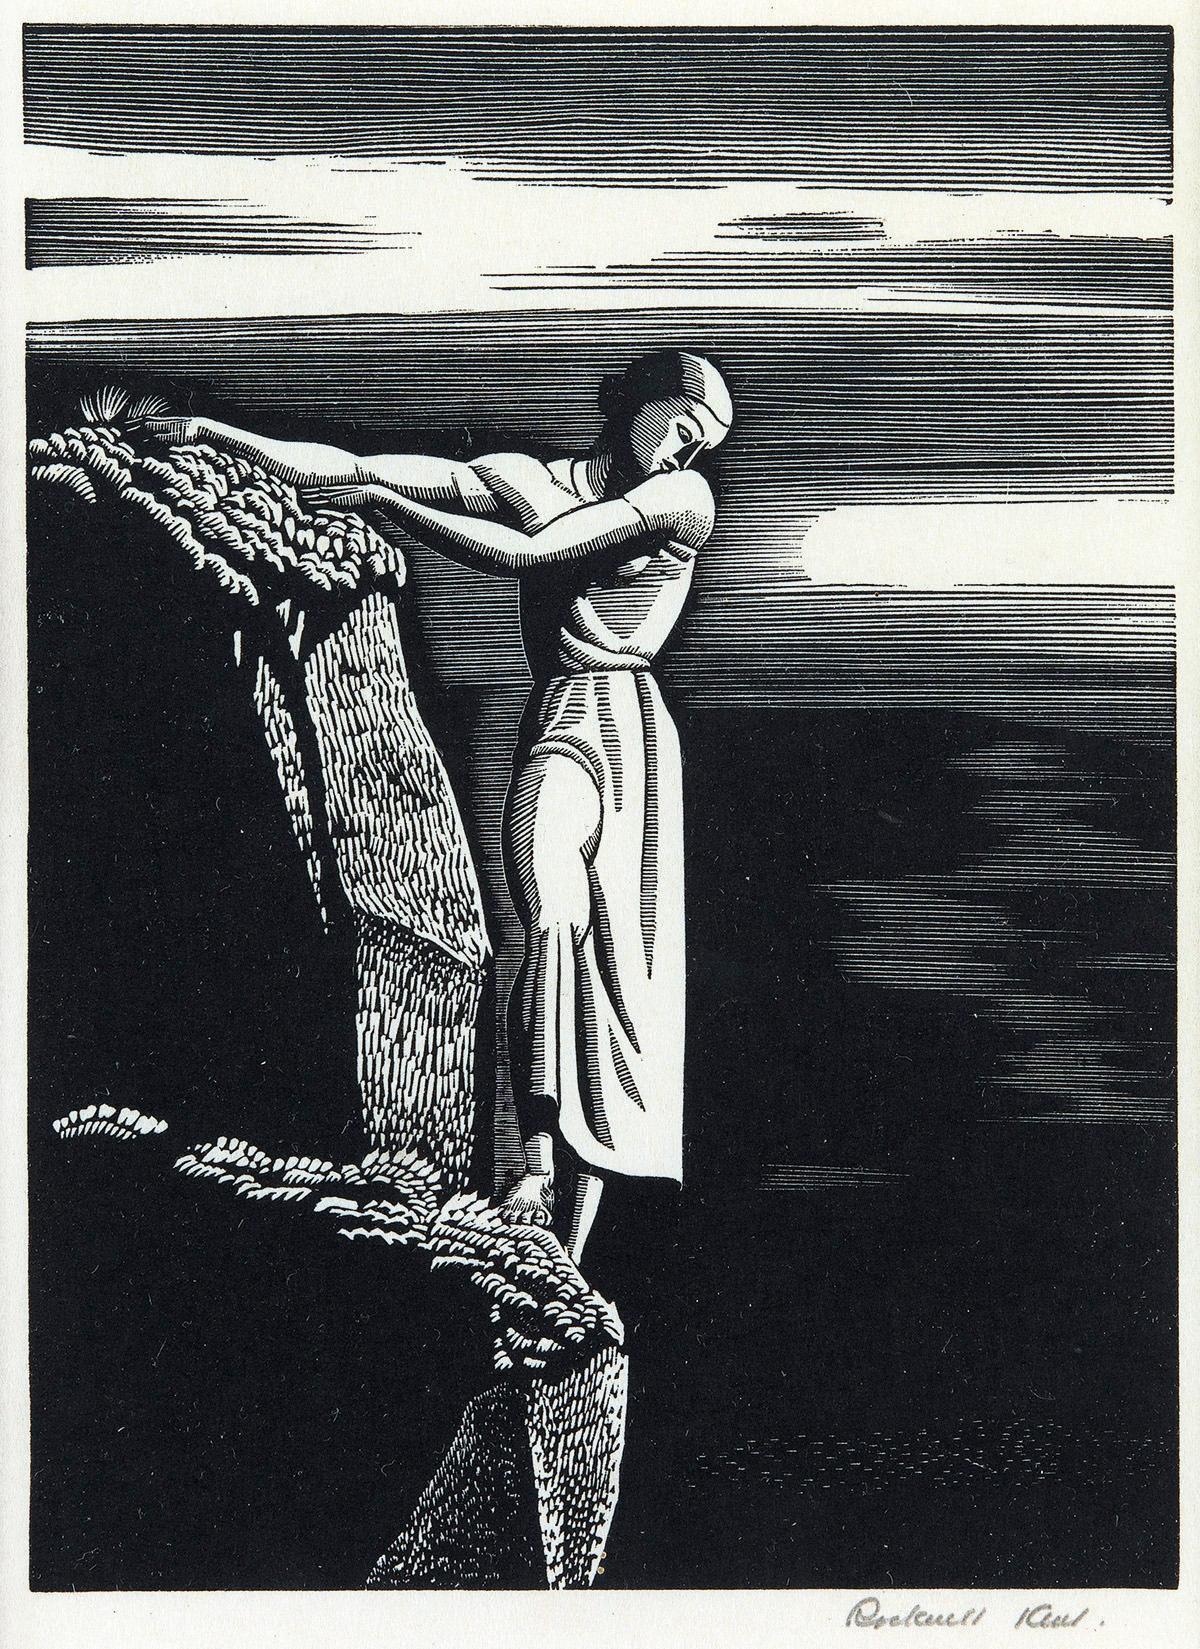 Sold Price: Rockwell Kent (AMERICAN, 1882-1971) 1930 Wood